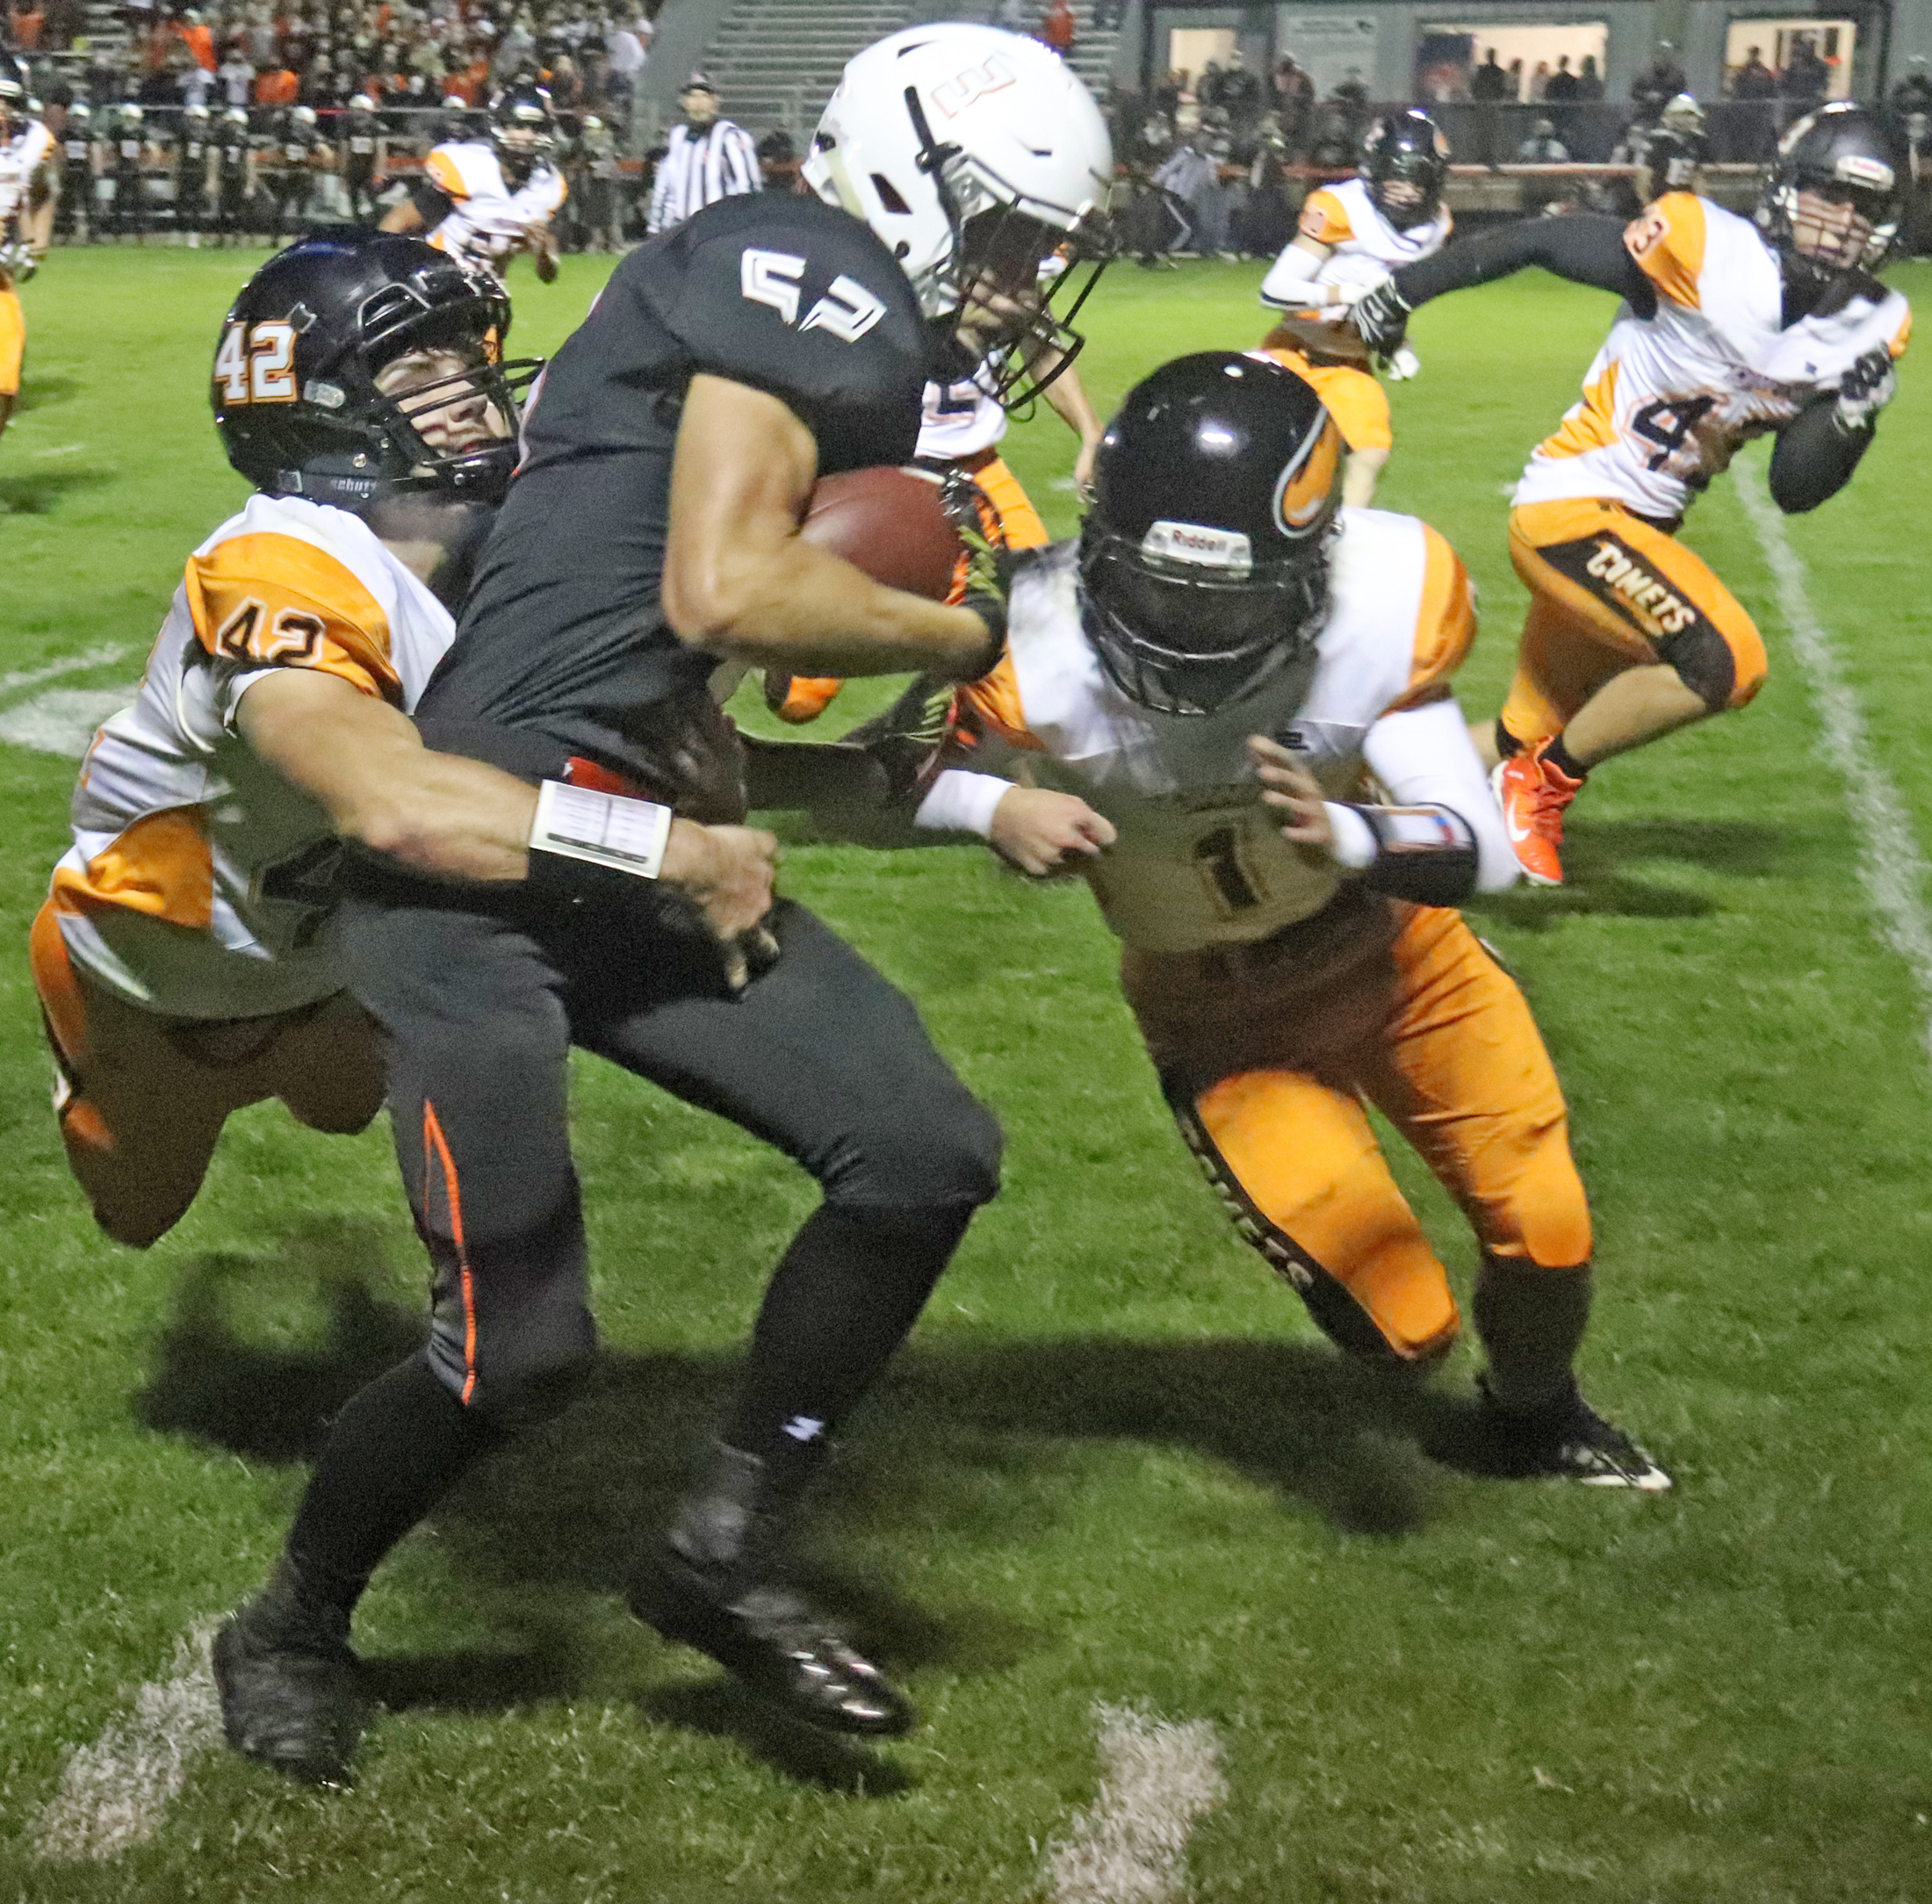 Comets fall to West Delaware Hawks 56-0 after 2-week layoff